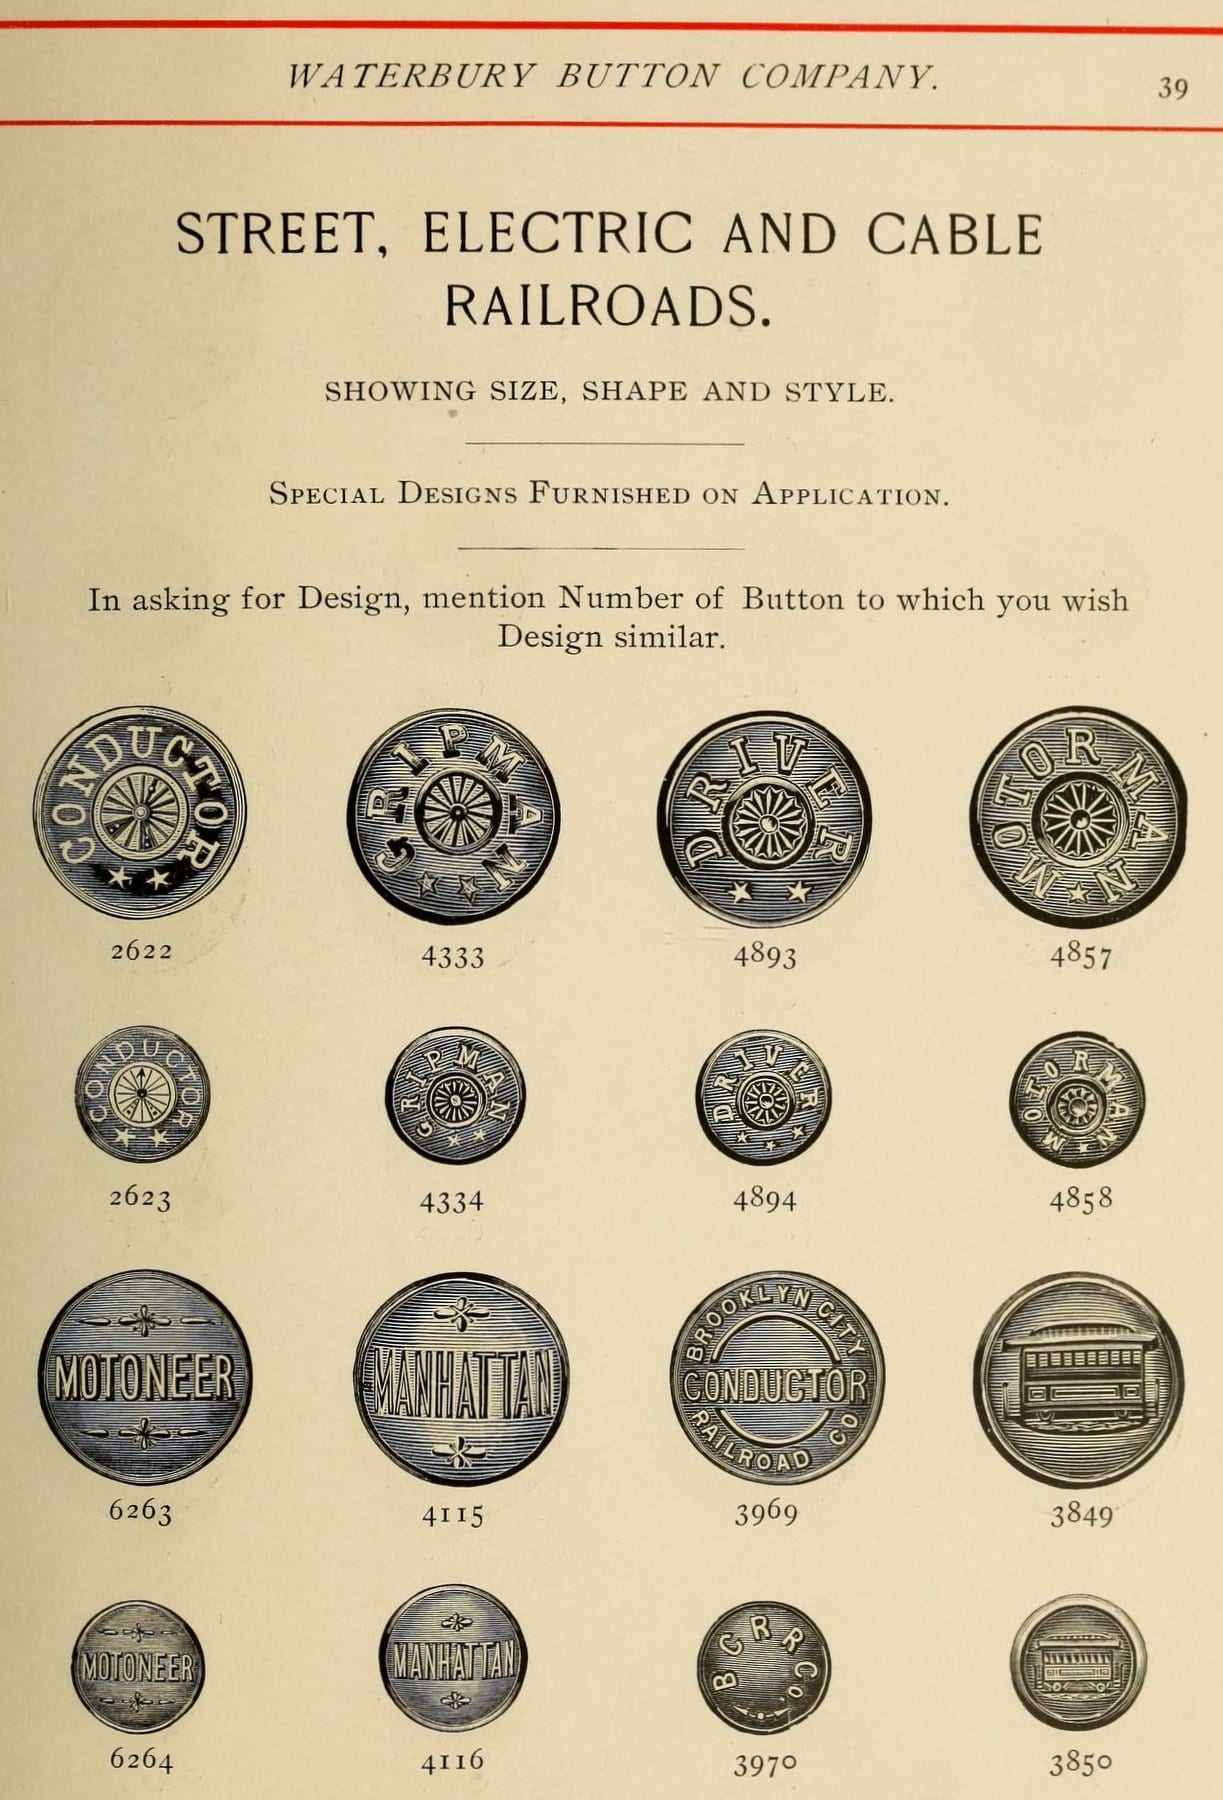 Military and all metal buttons from 1900